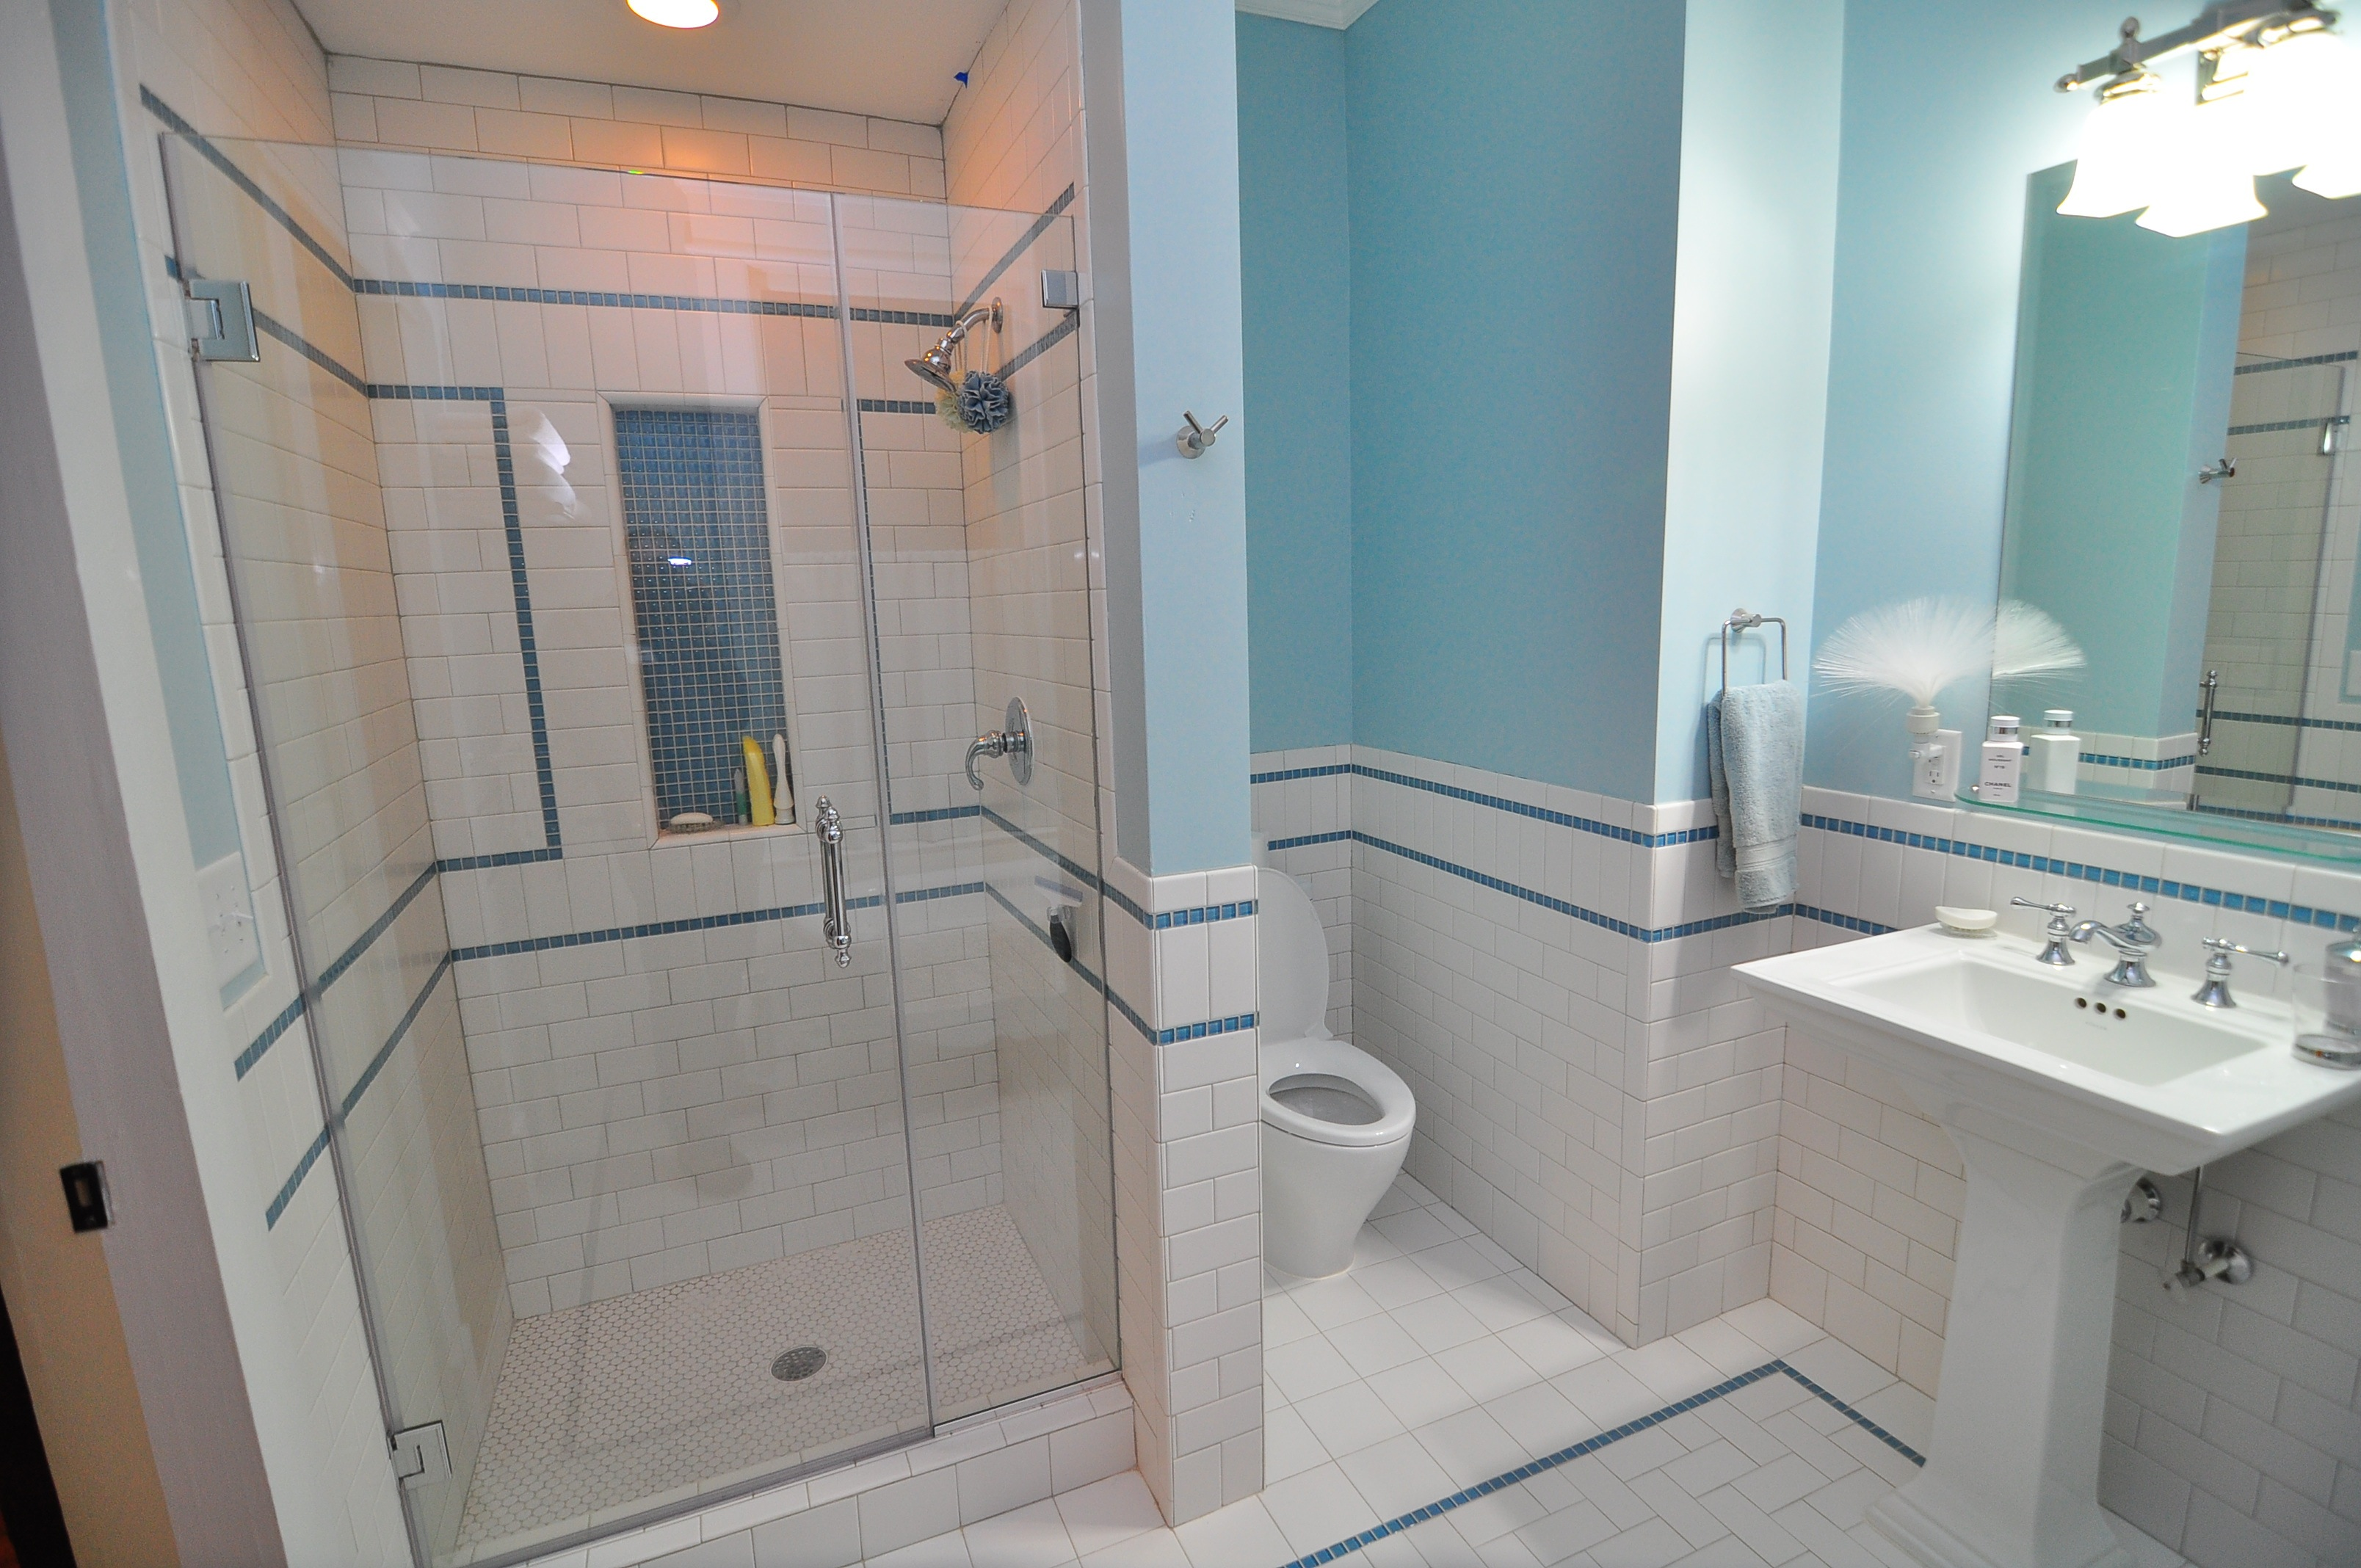 Subway tile four over one design for Blue tile bathroom ideas